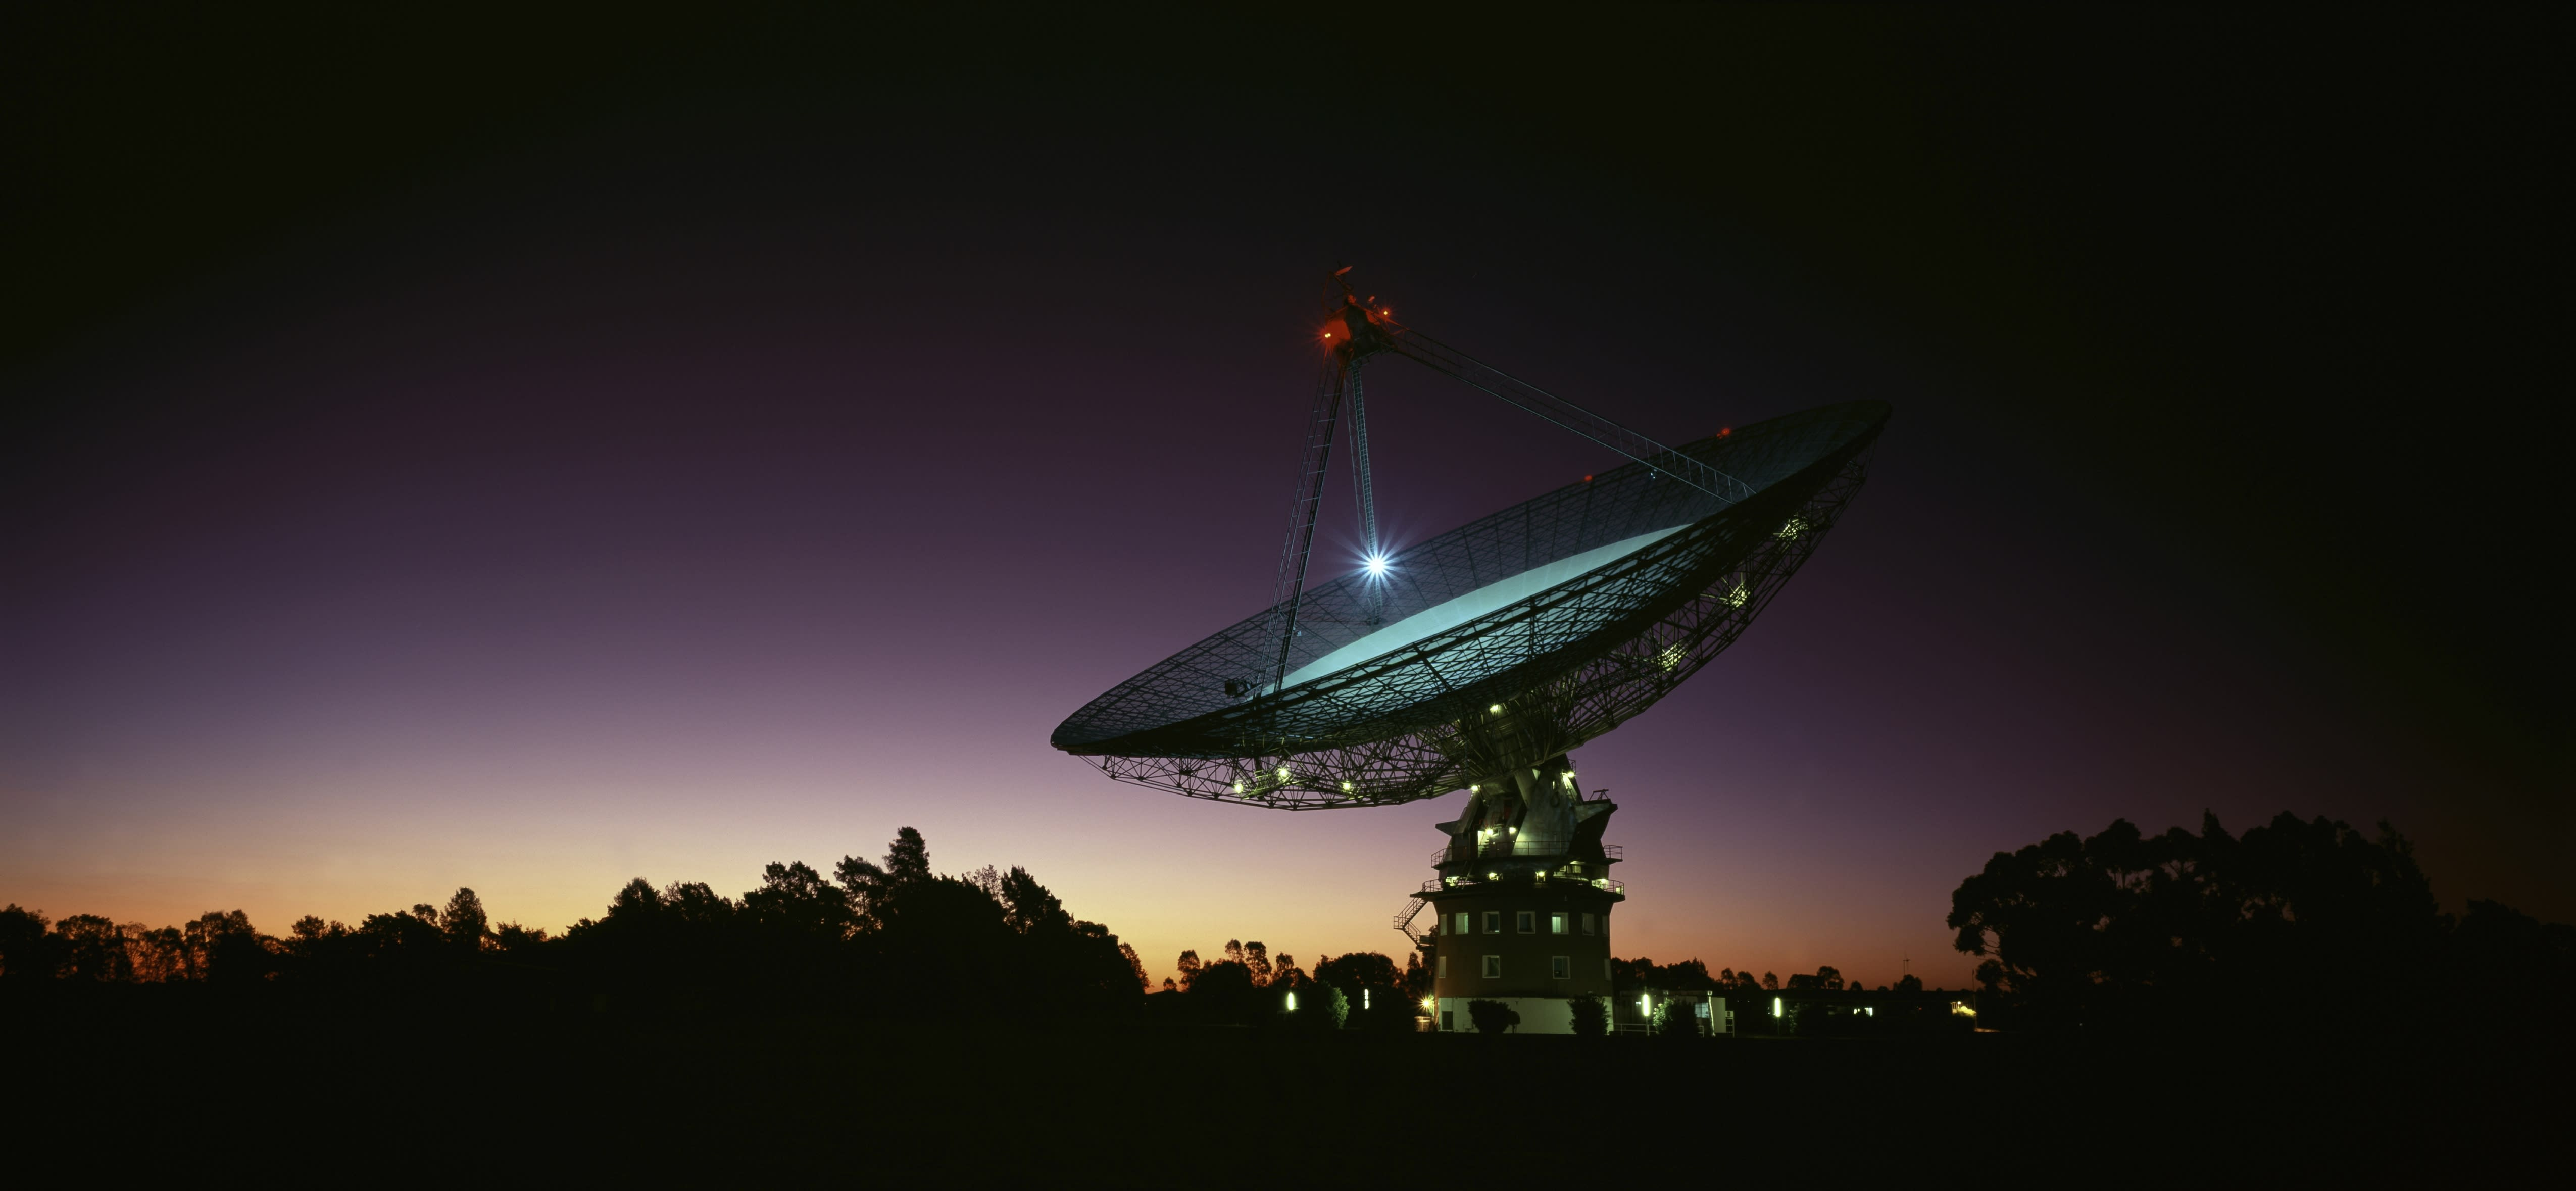 Parkes Radio-Telescope at night CSIRO facility, near Parkes Parkes, New South Wales, Australia. (Photo by Auscape/Universal Images Group via Getty Images)